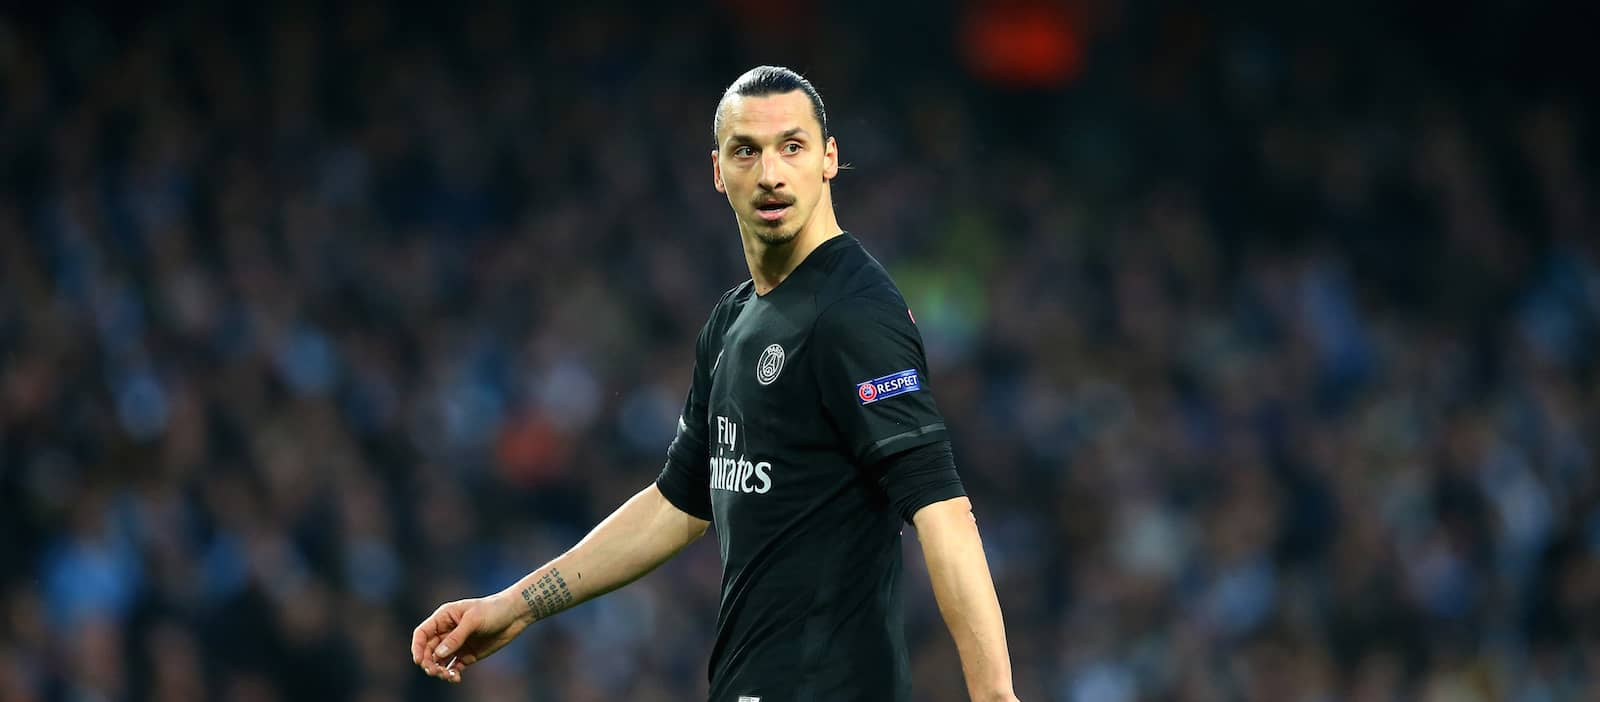 Man United transfer roundup including Ibrahimovic, Pogba and Mkhitaryan